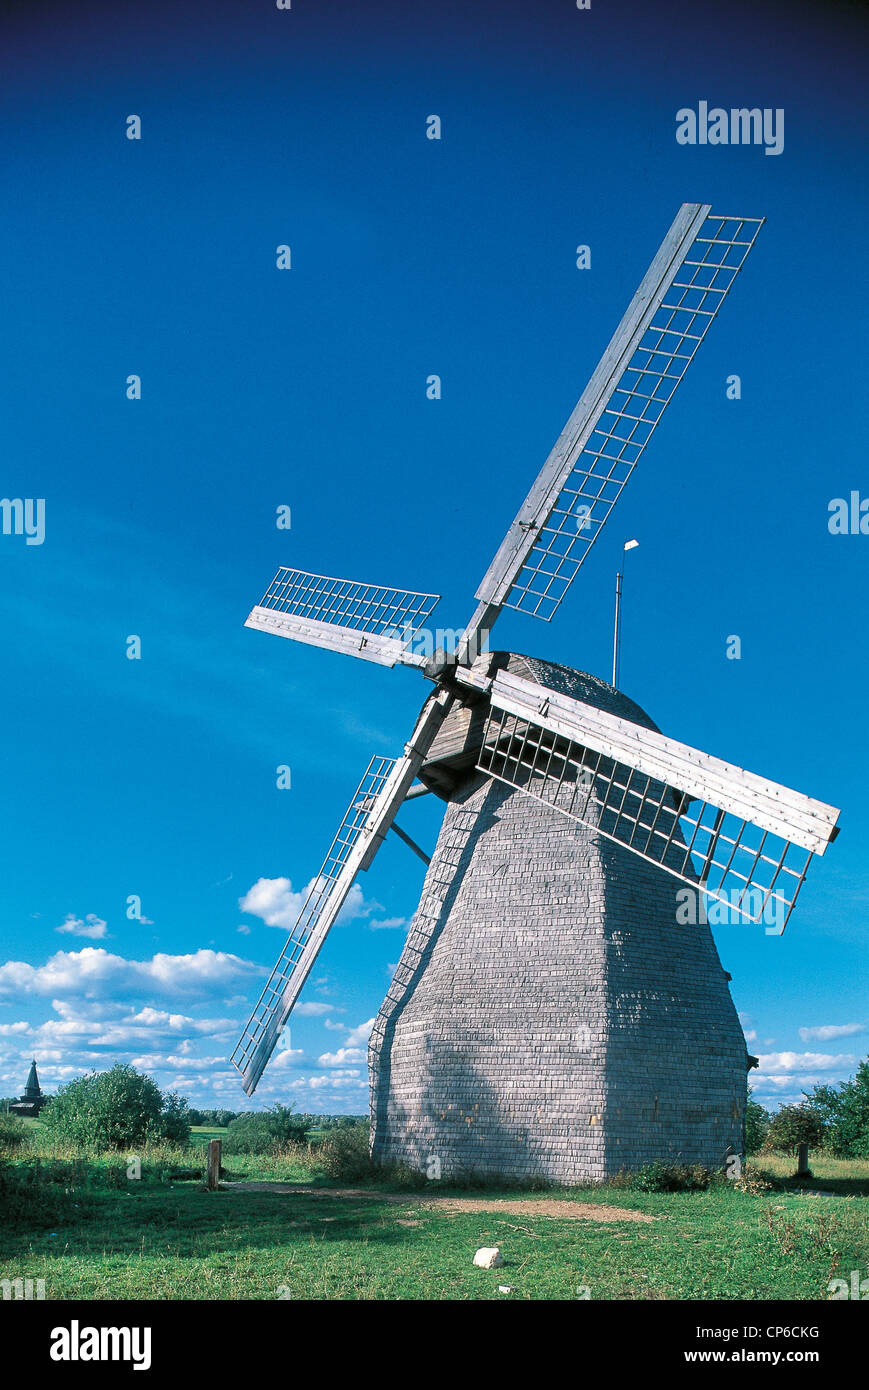 Russia, near Novgorod. Mill at the Monastery of St. George (Yuriev). - Stock Image